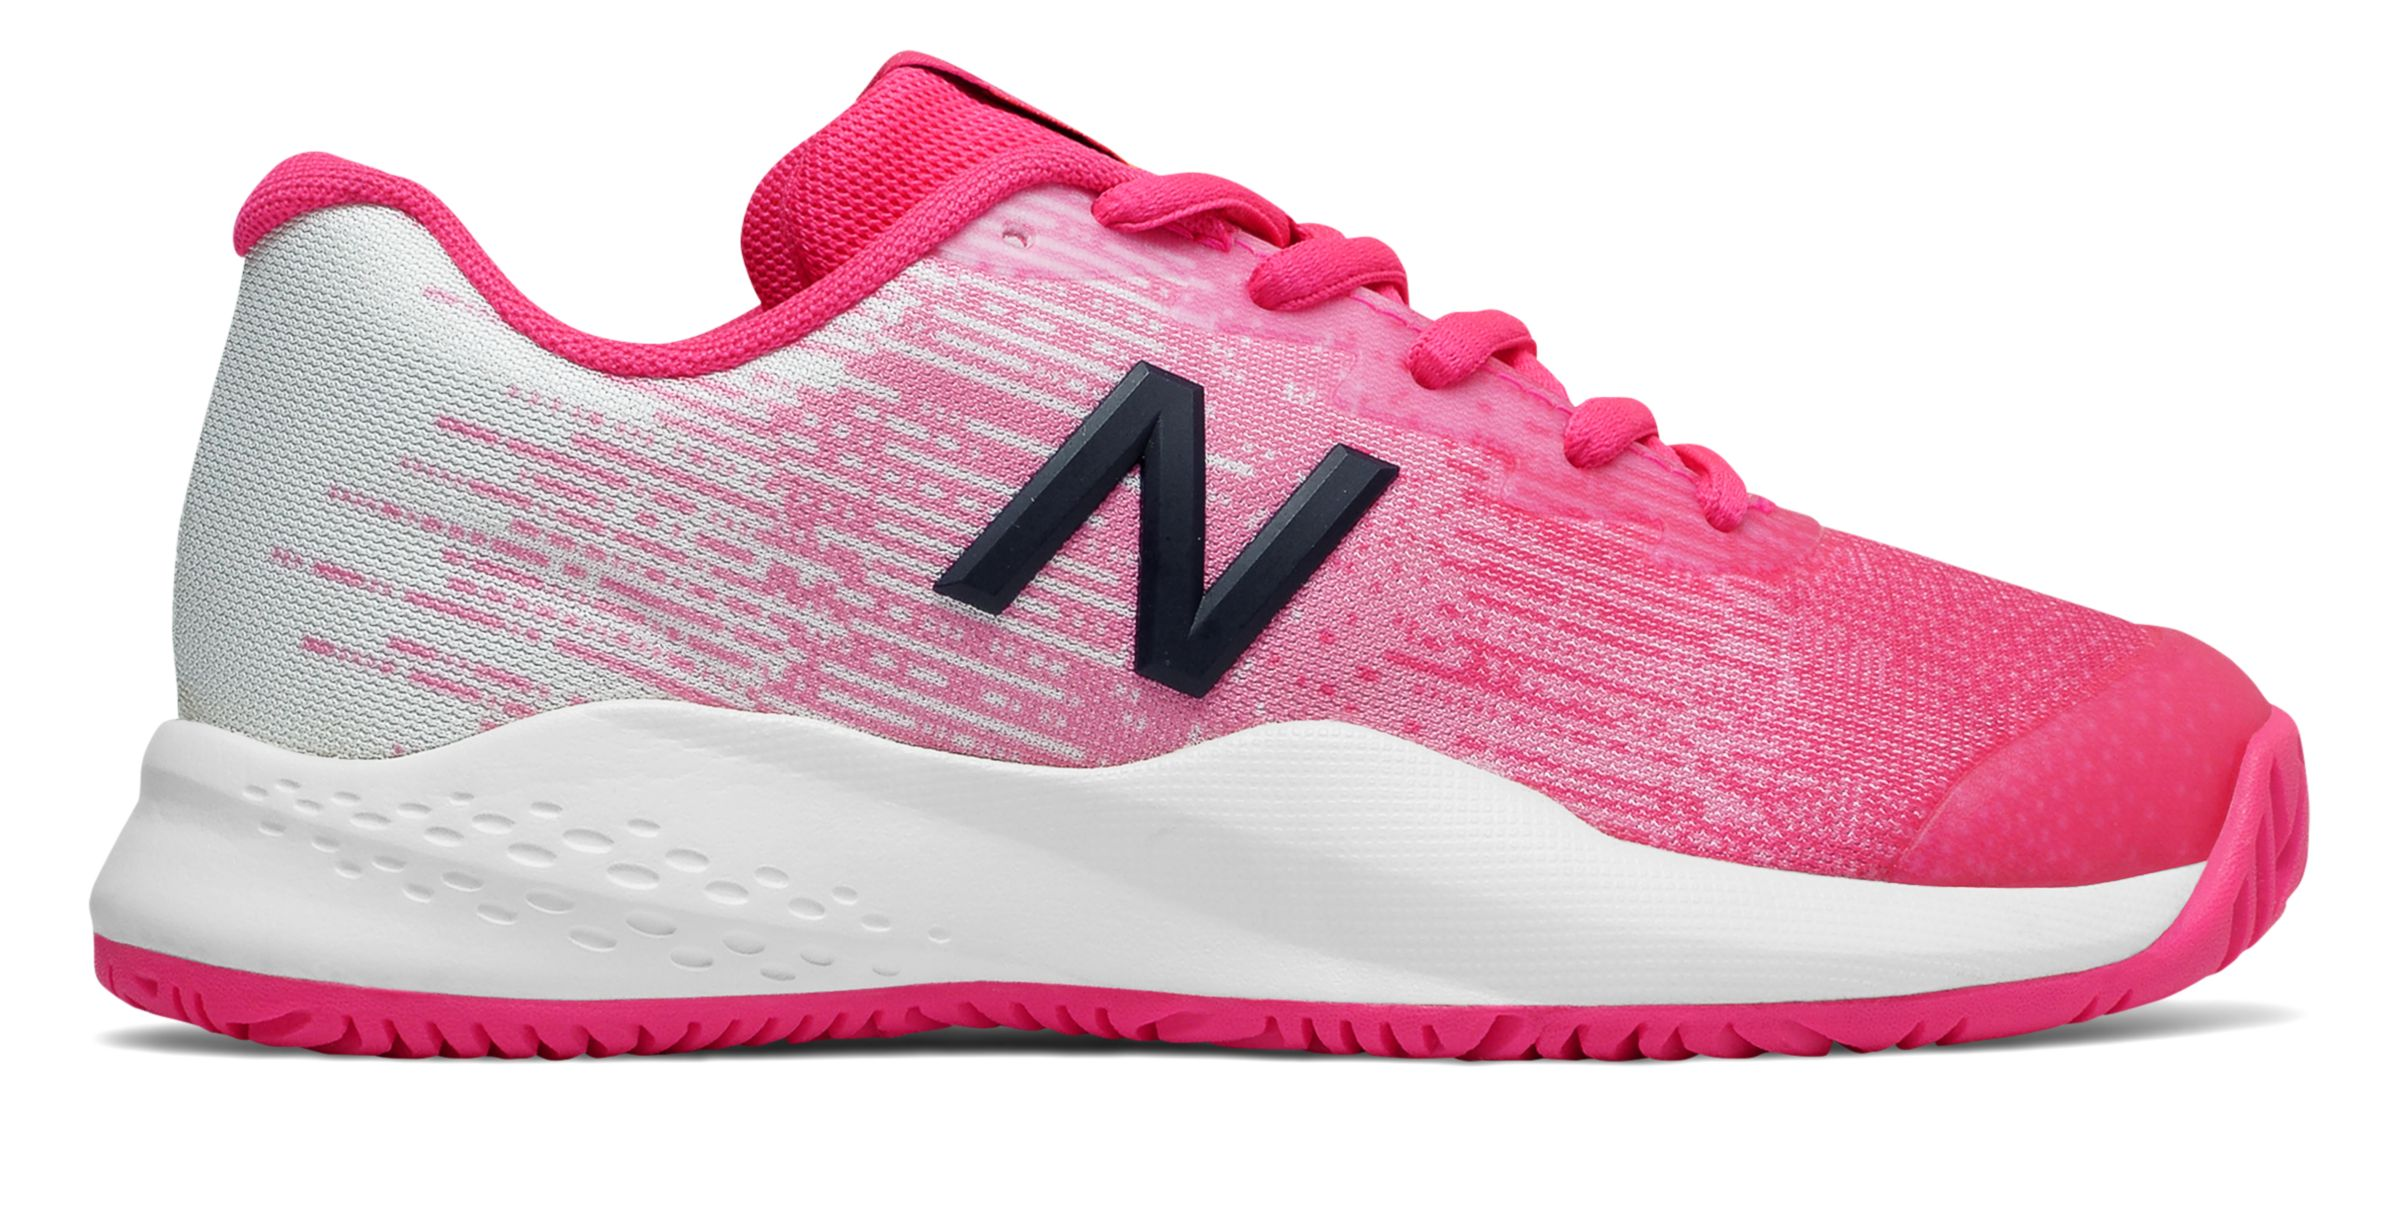 NB New Balance 996v3, Alpha Pink with White